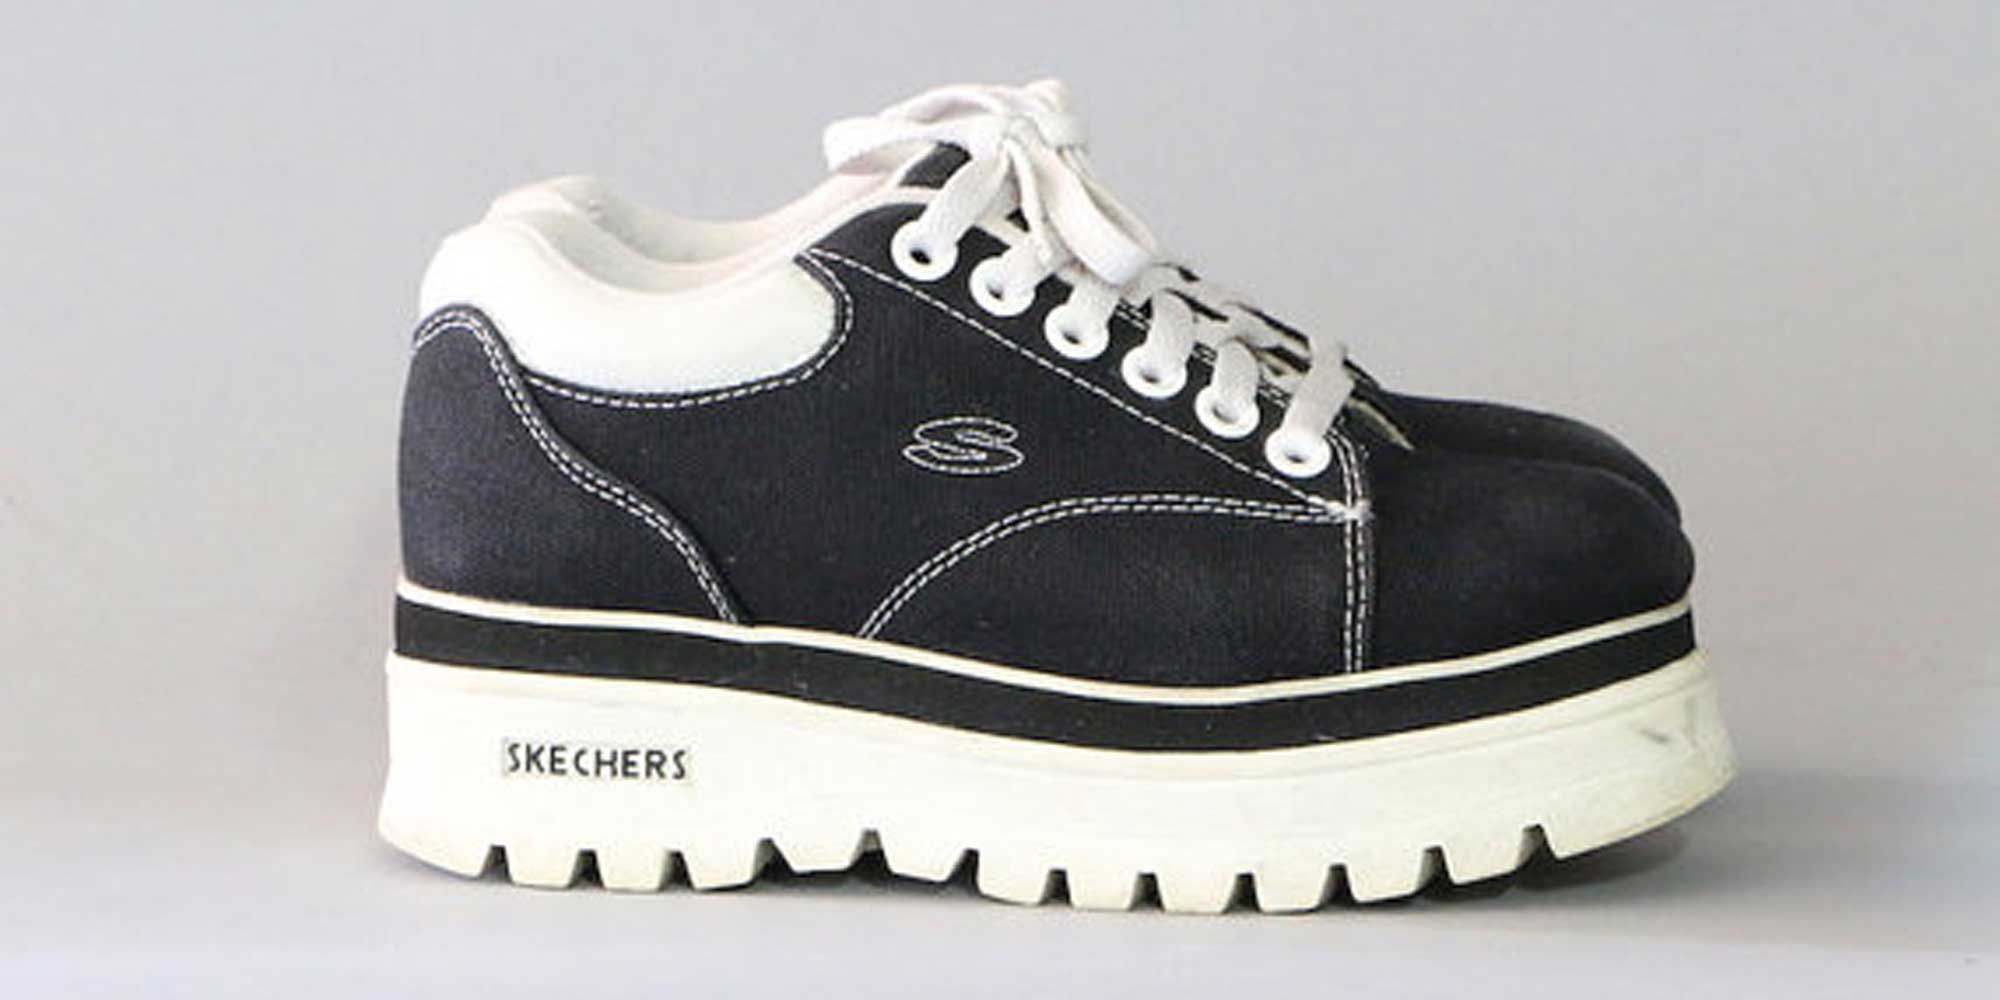 sketcher pumps